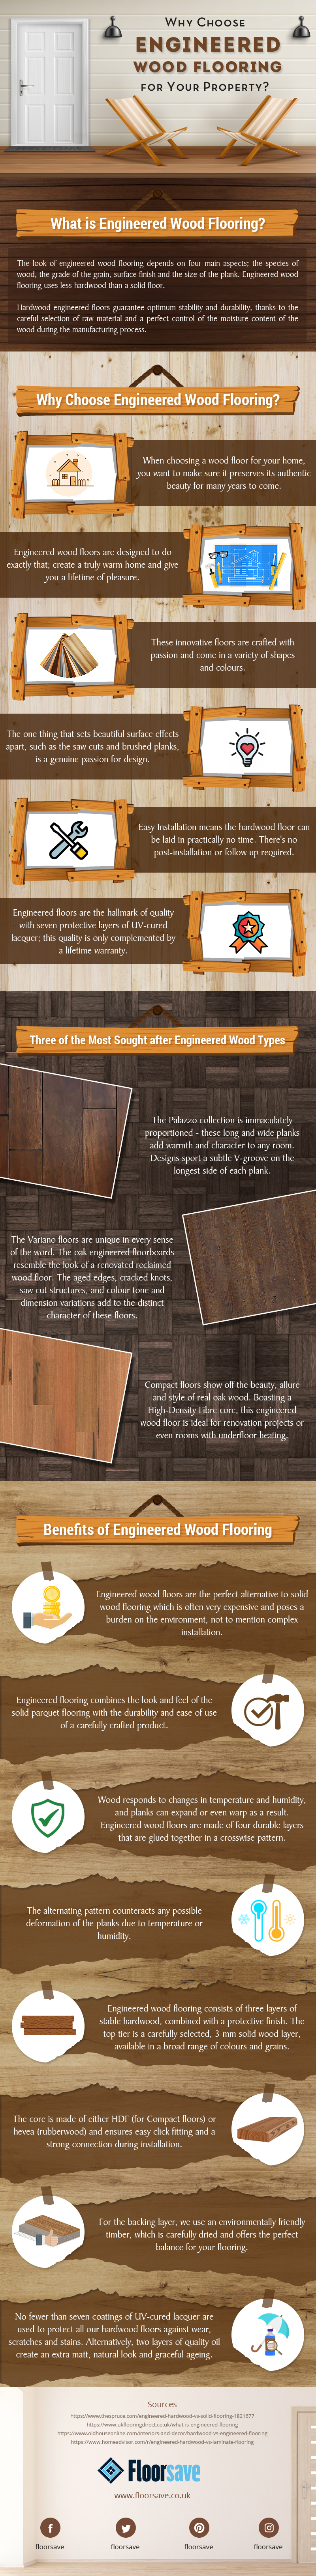 Why Choose Engineered Wood Flooring For Your Property?